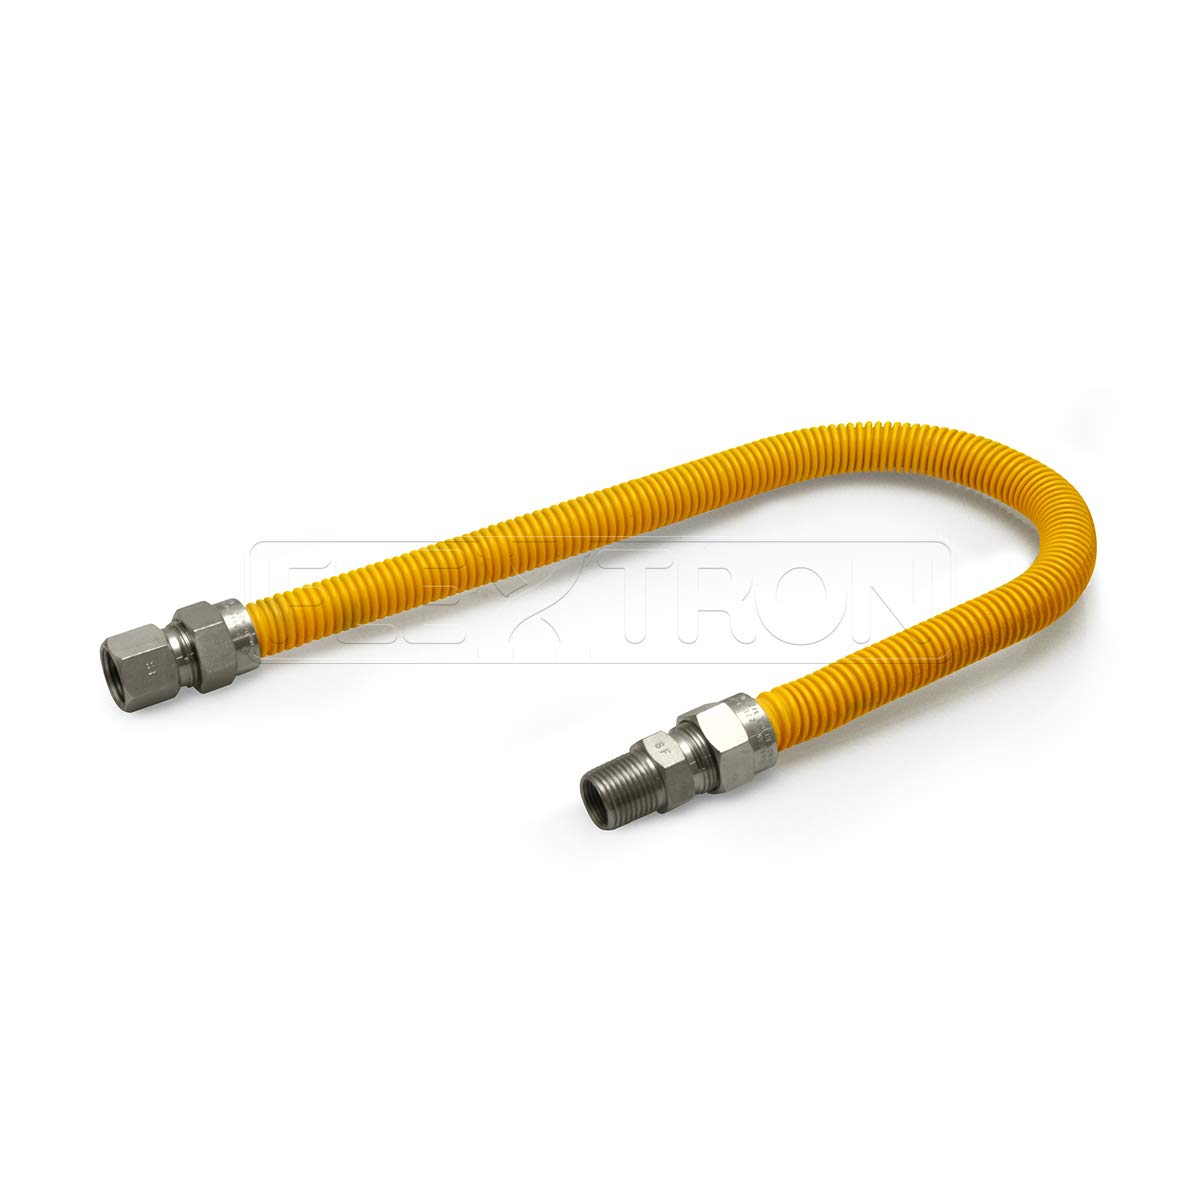 Flextron FTGC-YC12-30C Flexible Epoxy Gas Line, Gas Pipe Connector With 5/8 in. Outer Diameter and 1/2 in. Inside Diameter; 1/2 in. FIP x 1/2 in MIP Fittings; Yellow/Stainless Steel Gas Hose 30 in. Long